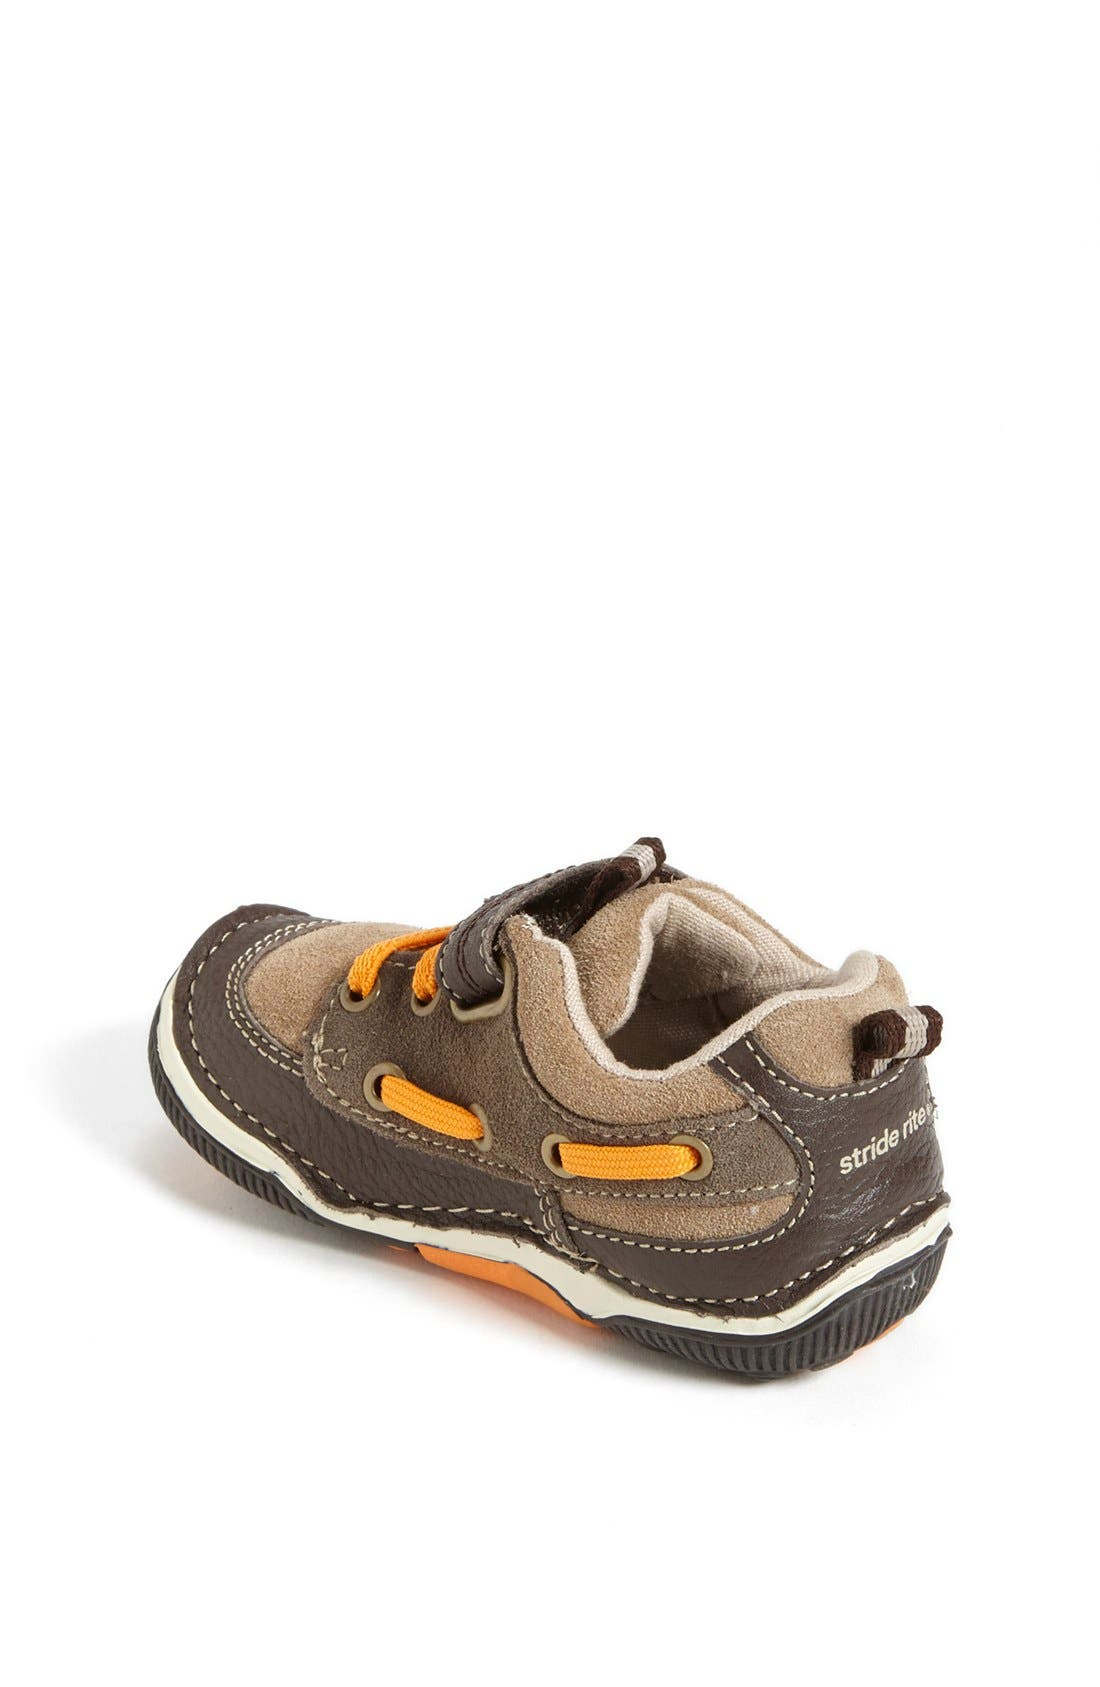 Alternate Image 2  - Stride Rite 'Mosby' Sneaker (Baby, Walker & Toddler)